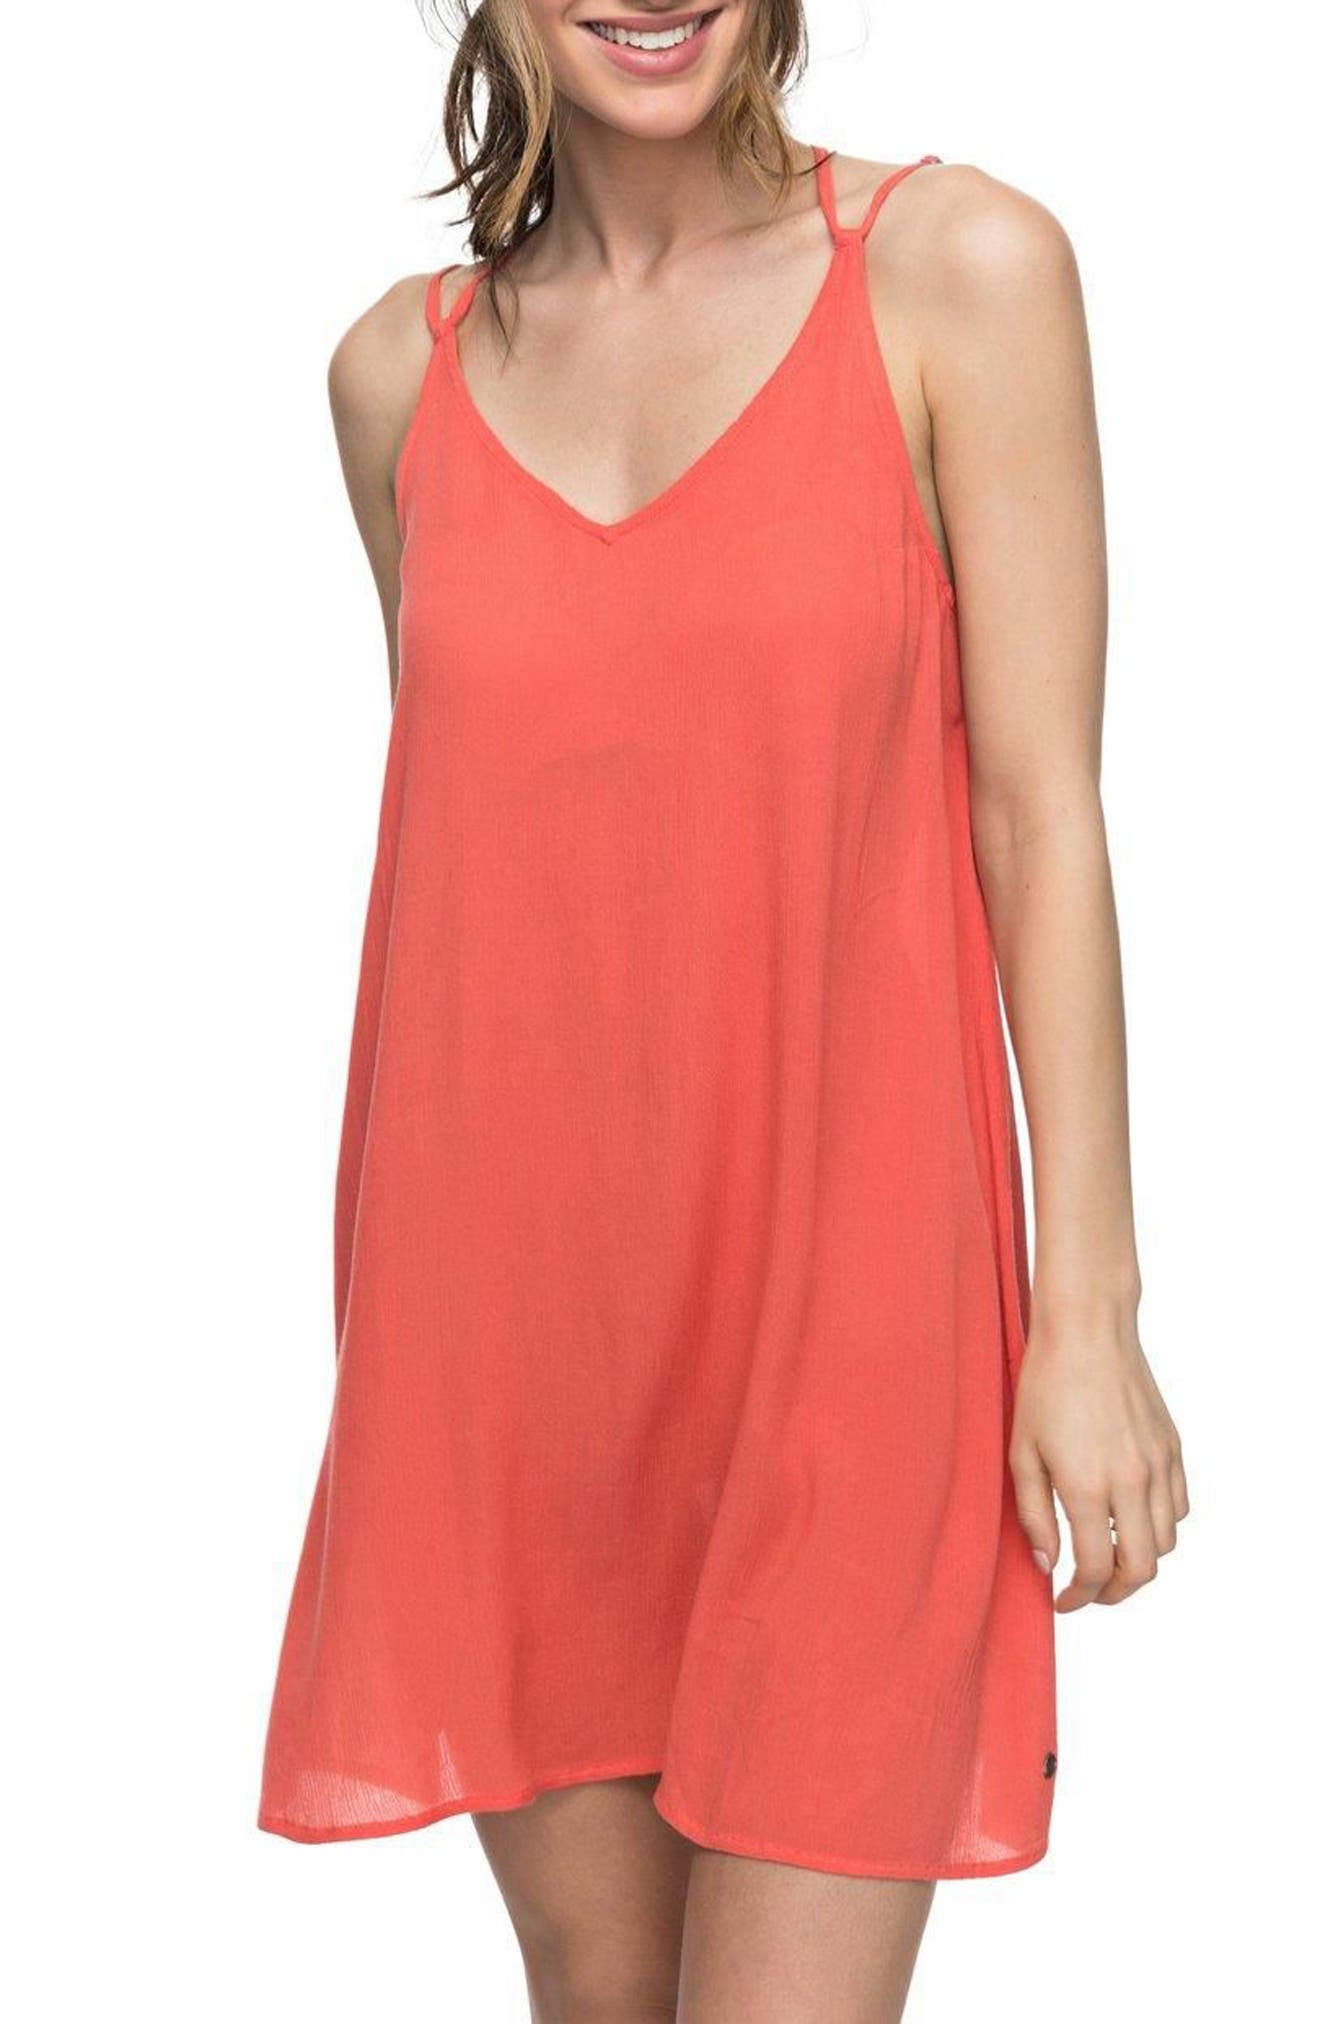 Roxy Dome of Amalfi Strappy Camisole Dress